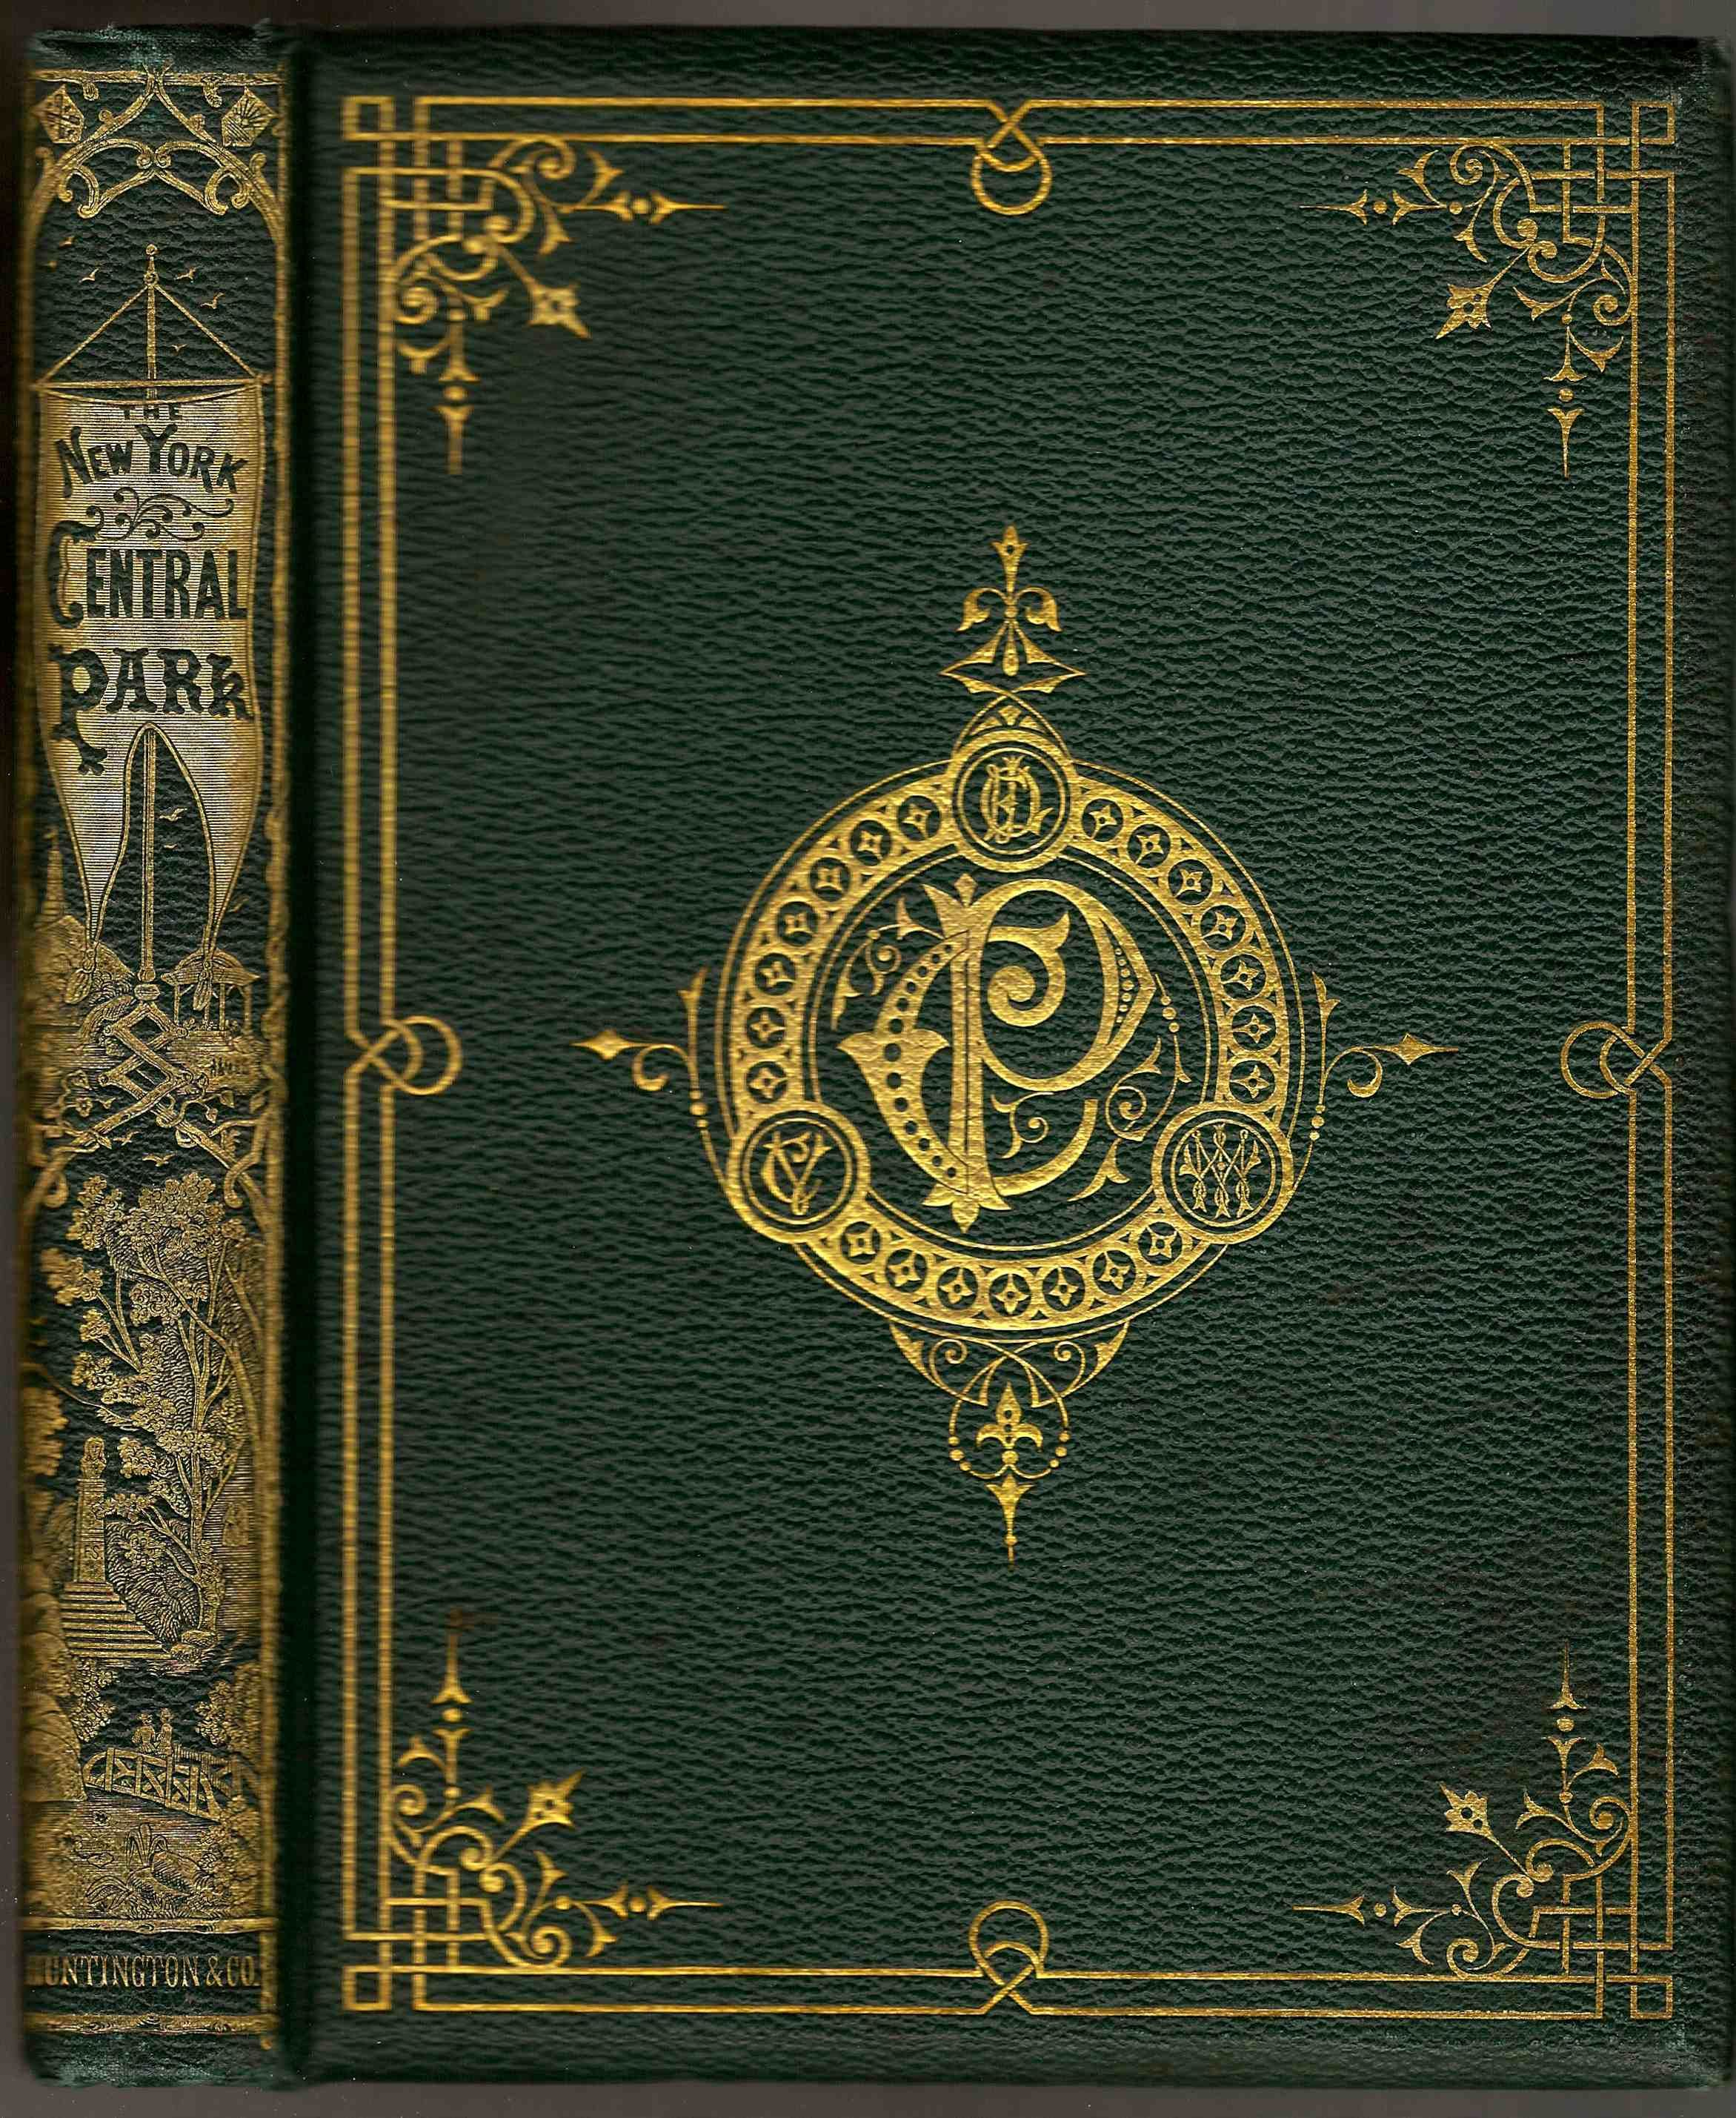 From Crossroadbookstore Com Love The Compass Like Emboss On The Cover And The Detail On The Spine Book Cover Art Antique Books Book Cover